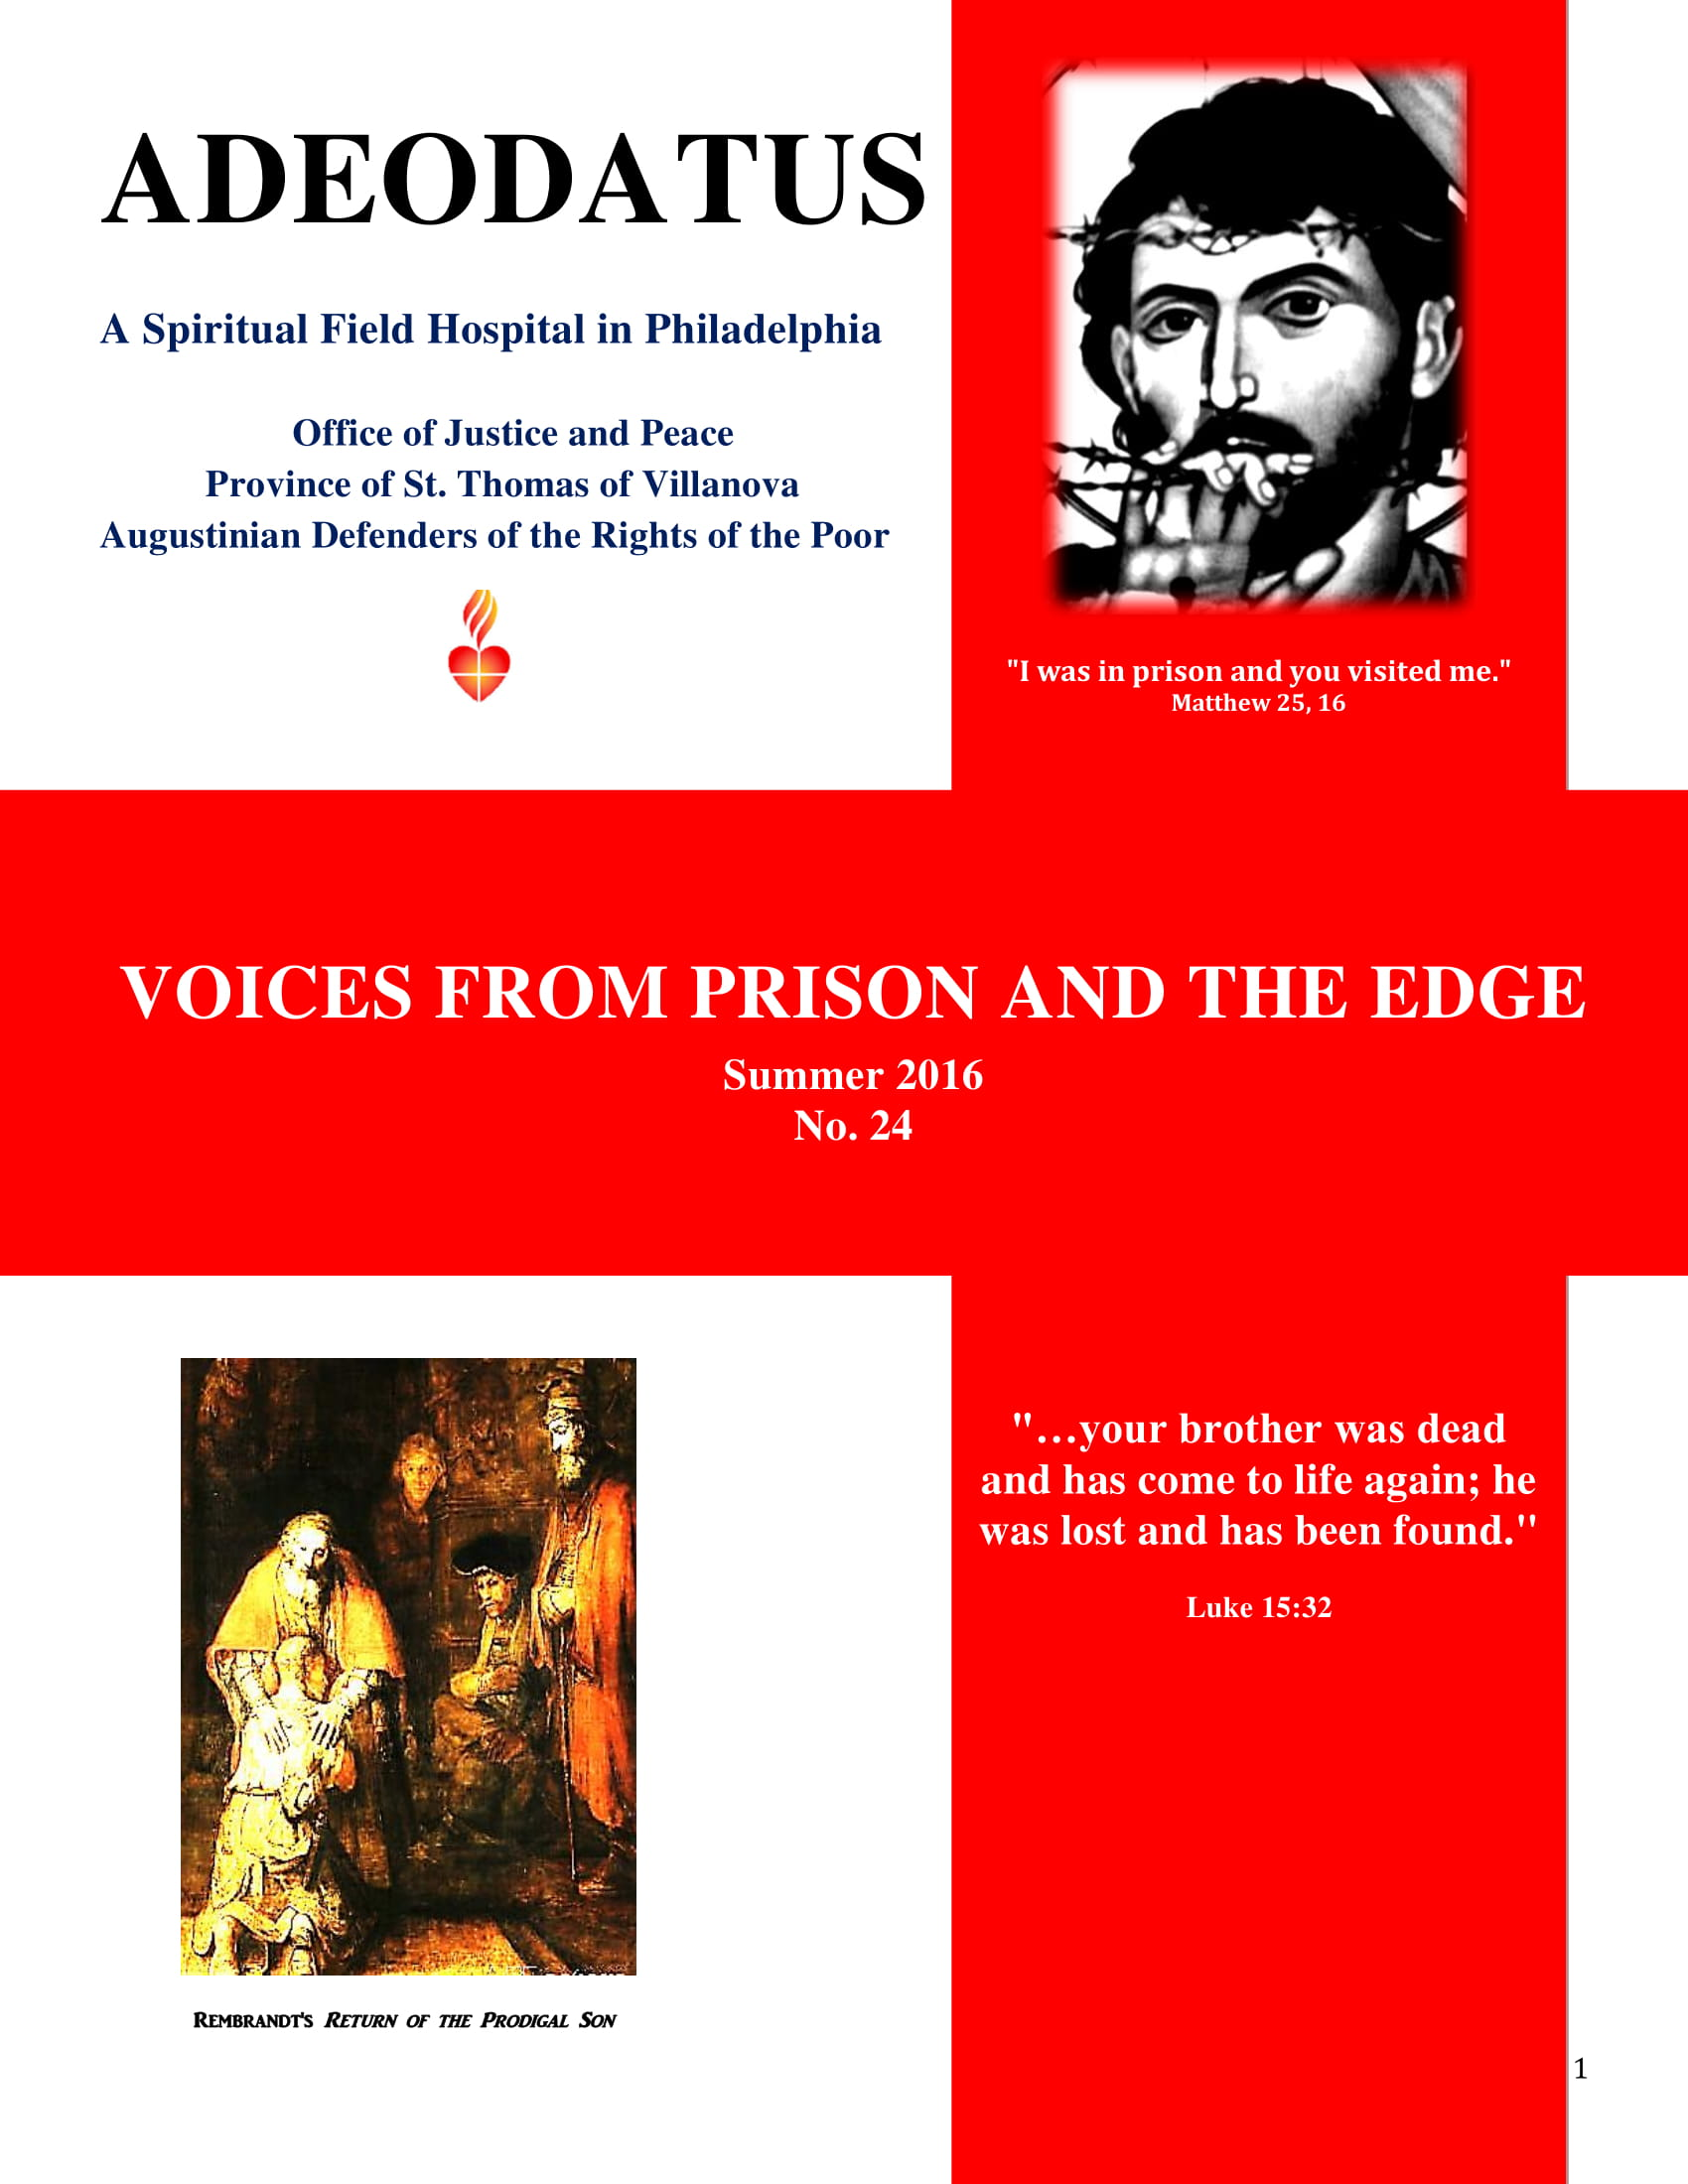 Voices From Prison 24-1.jpg